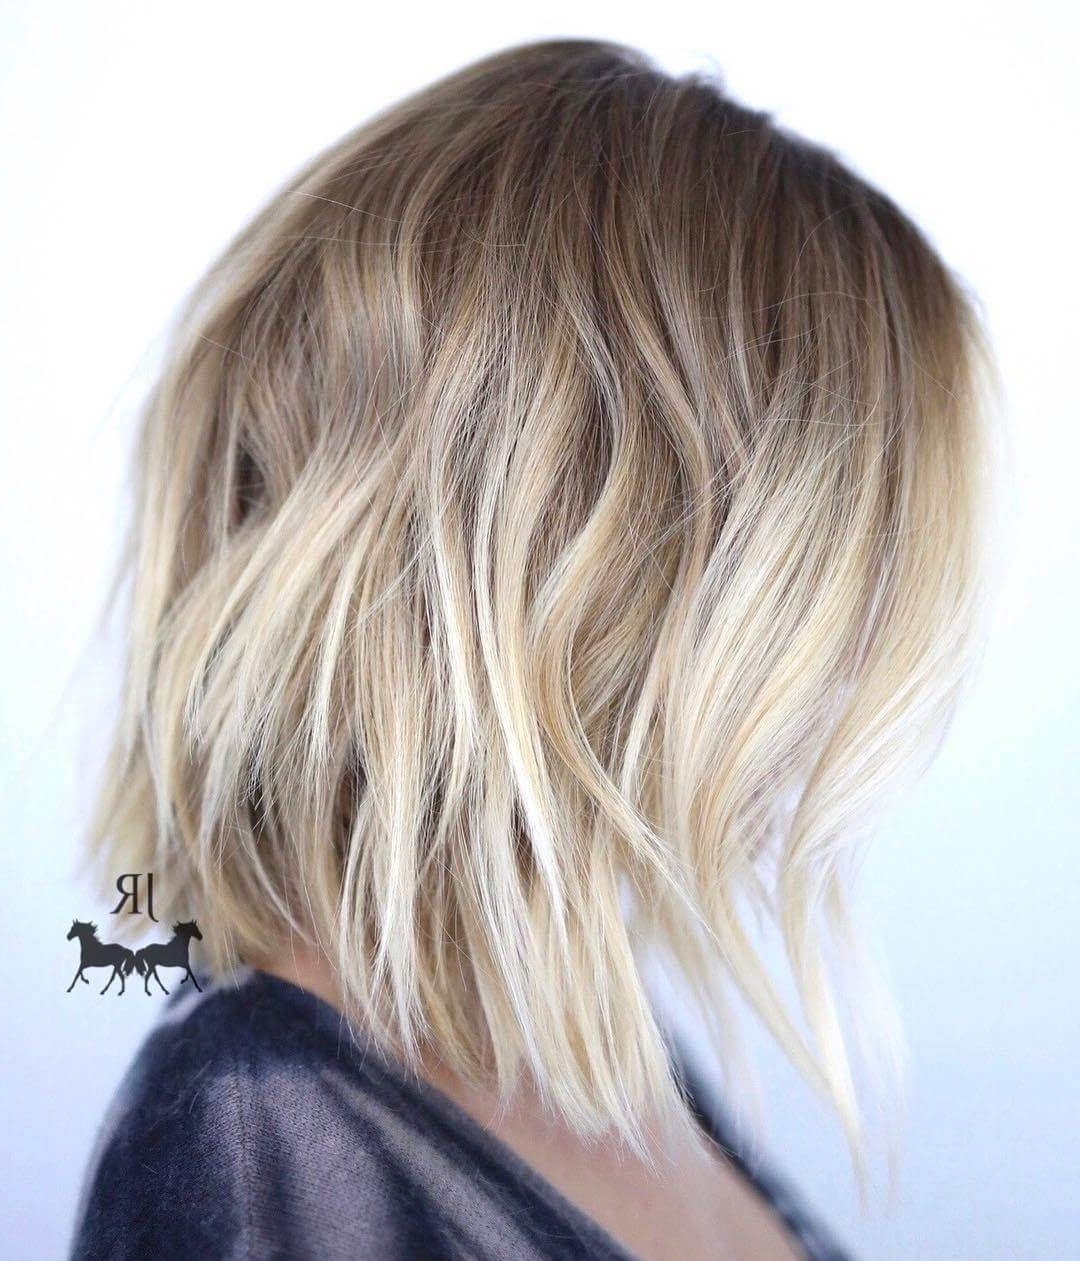 50 Fresh Short Blonde Hair Ideas To Update Your Style In 2018 Regarding Popular Side Swept Warm Blonde Hairstyles (View 5 of 20)